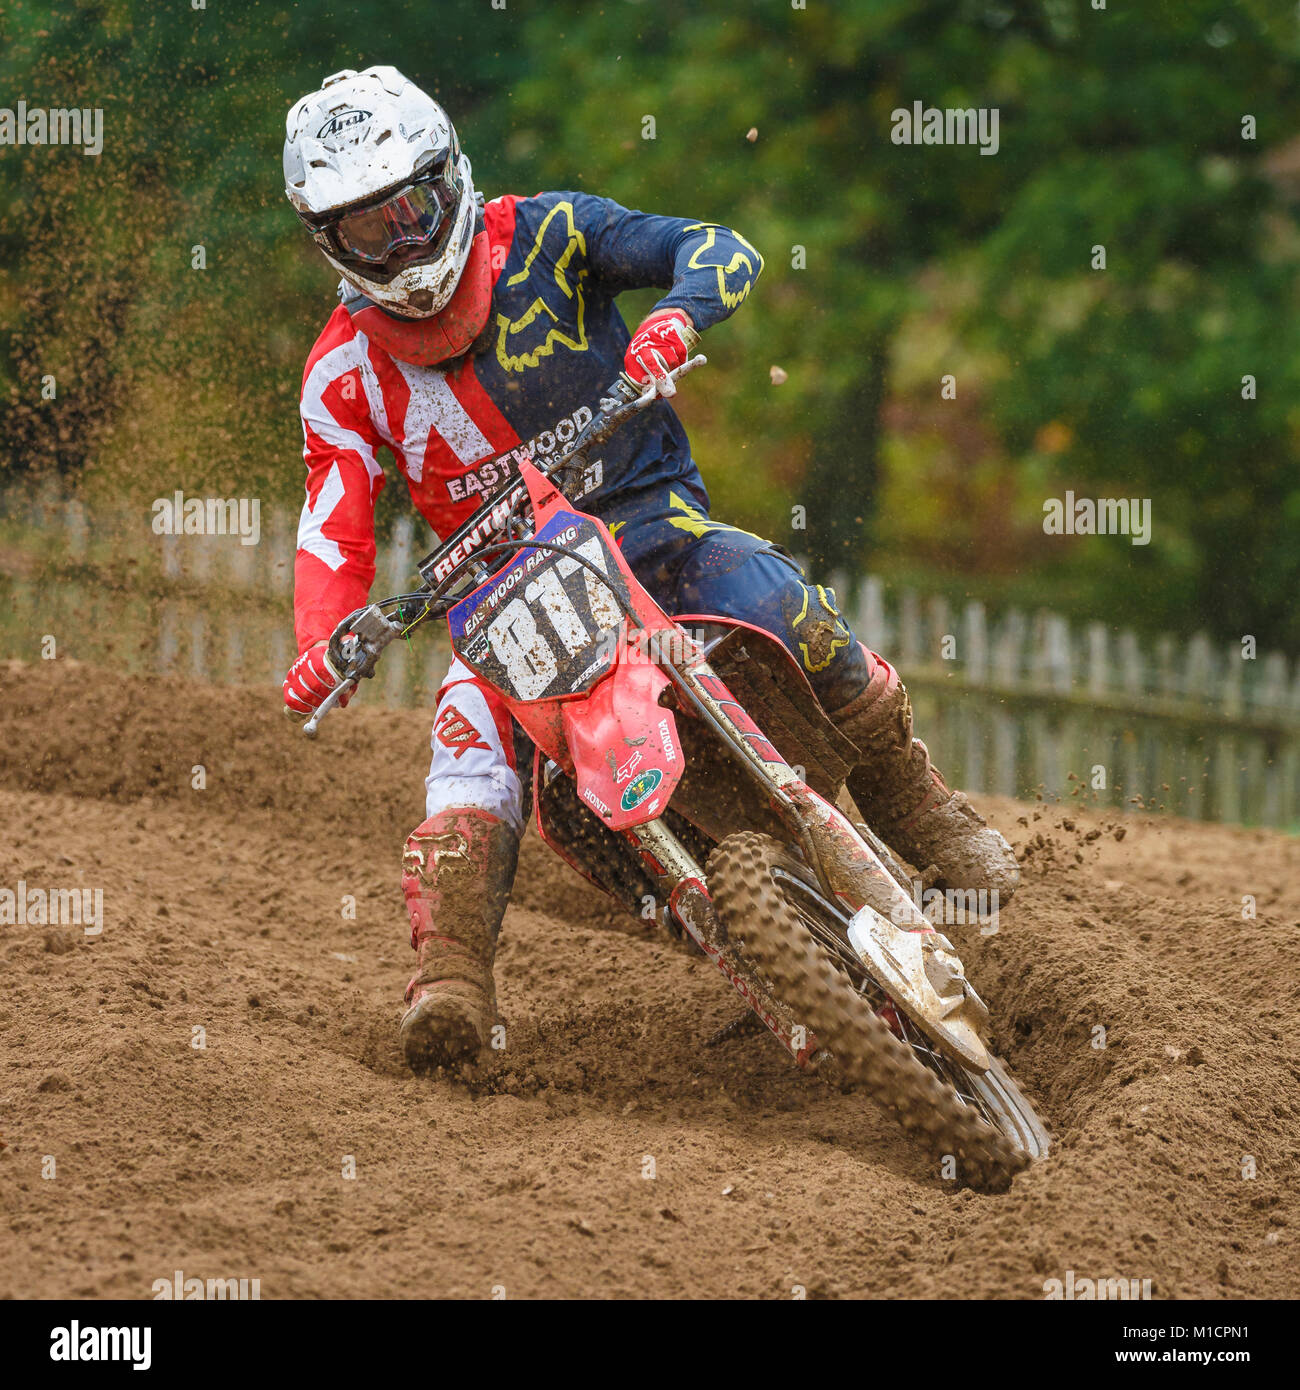 George Turner on the Eastwood Racing Wiseco Honda 250 at the NGR & ACU Eastern EVO Solo Motocross Championships, - Stock Image